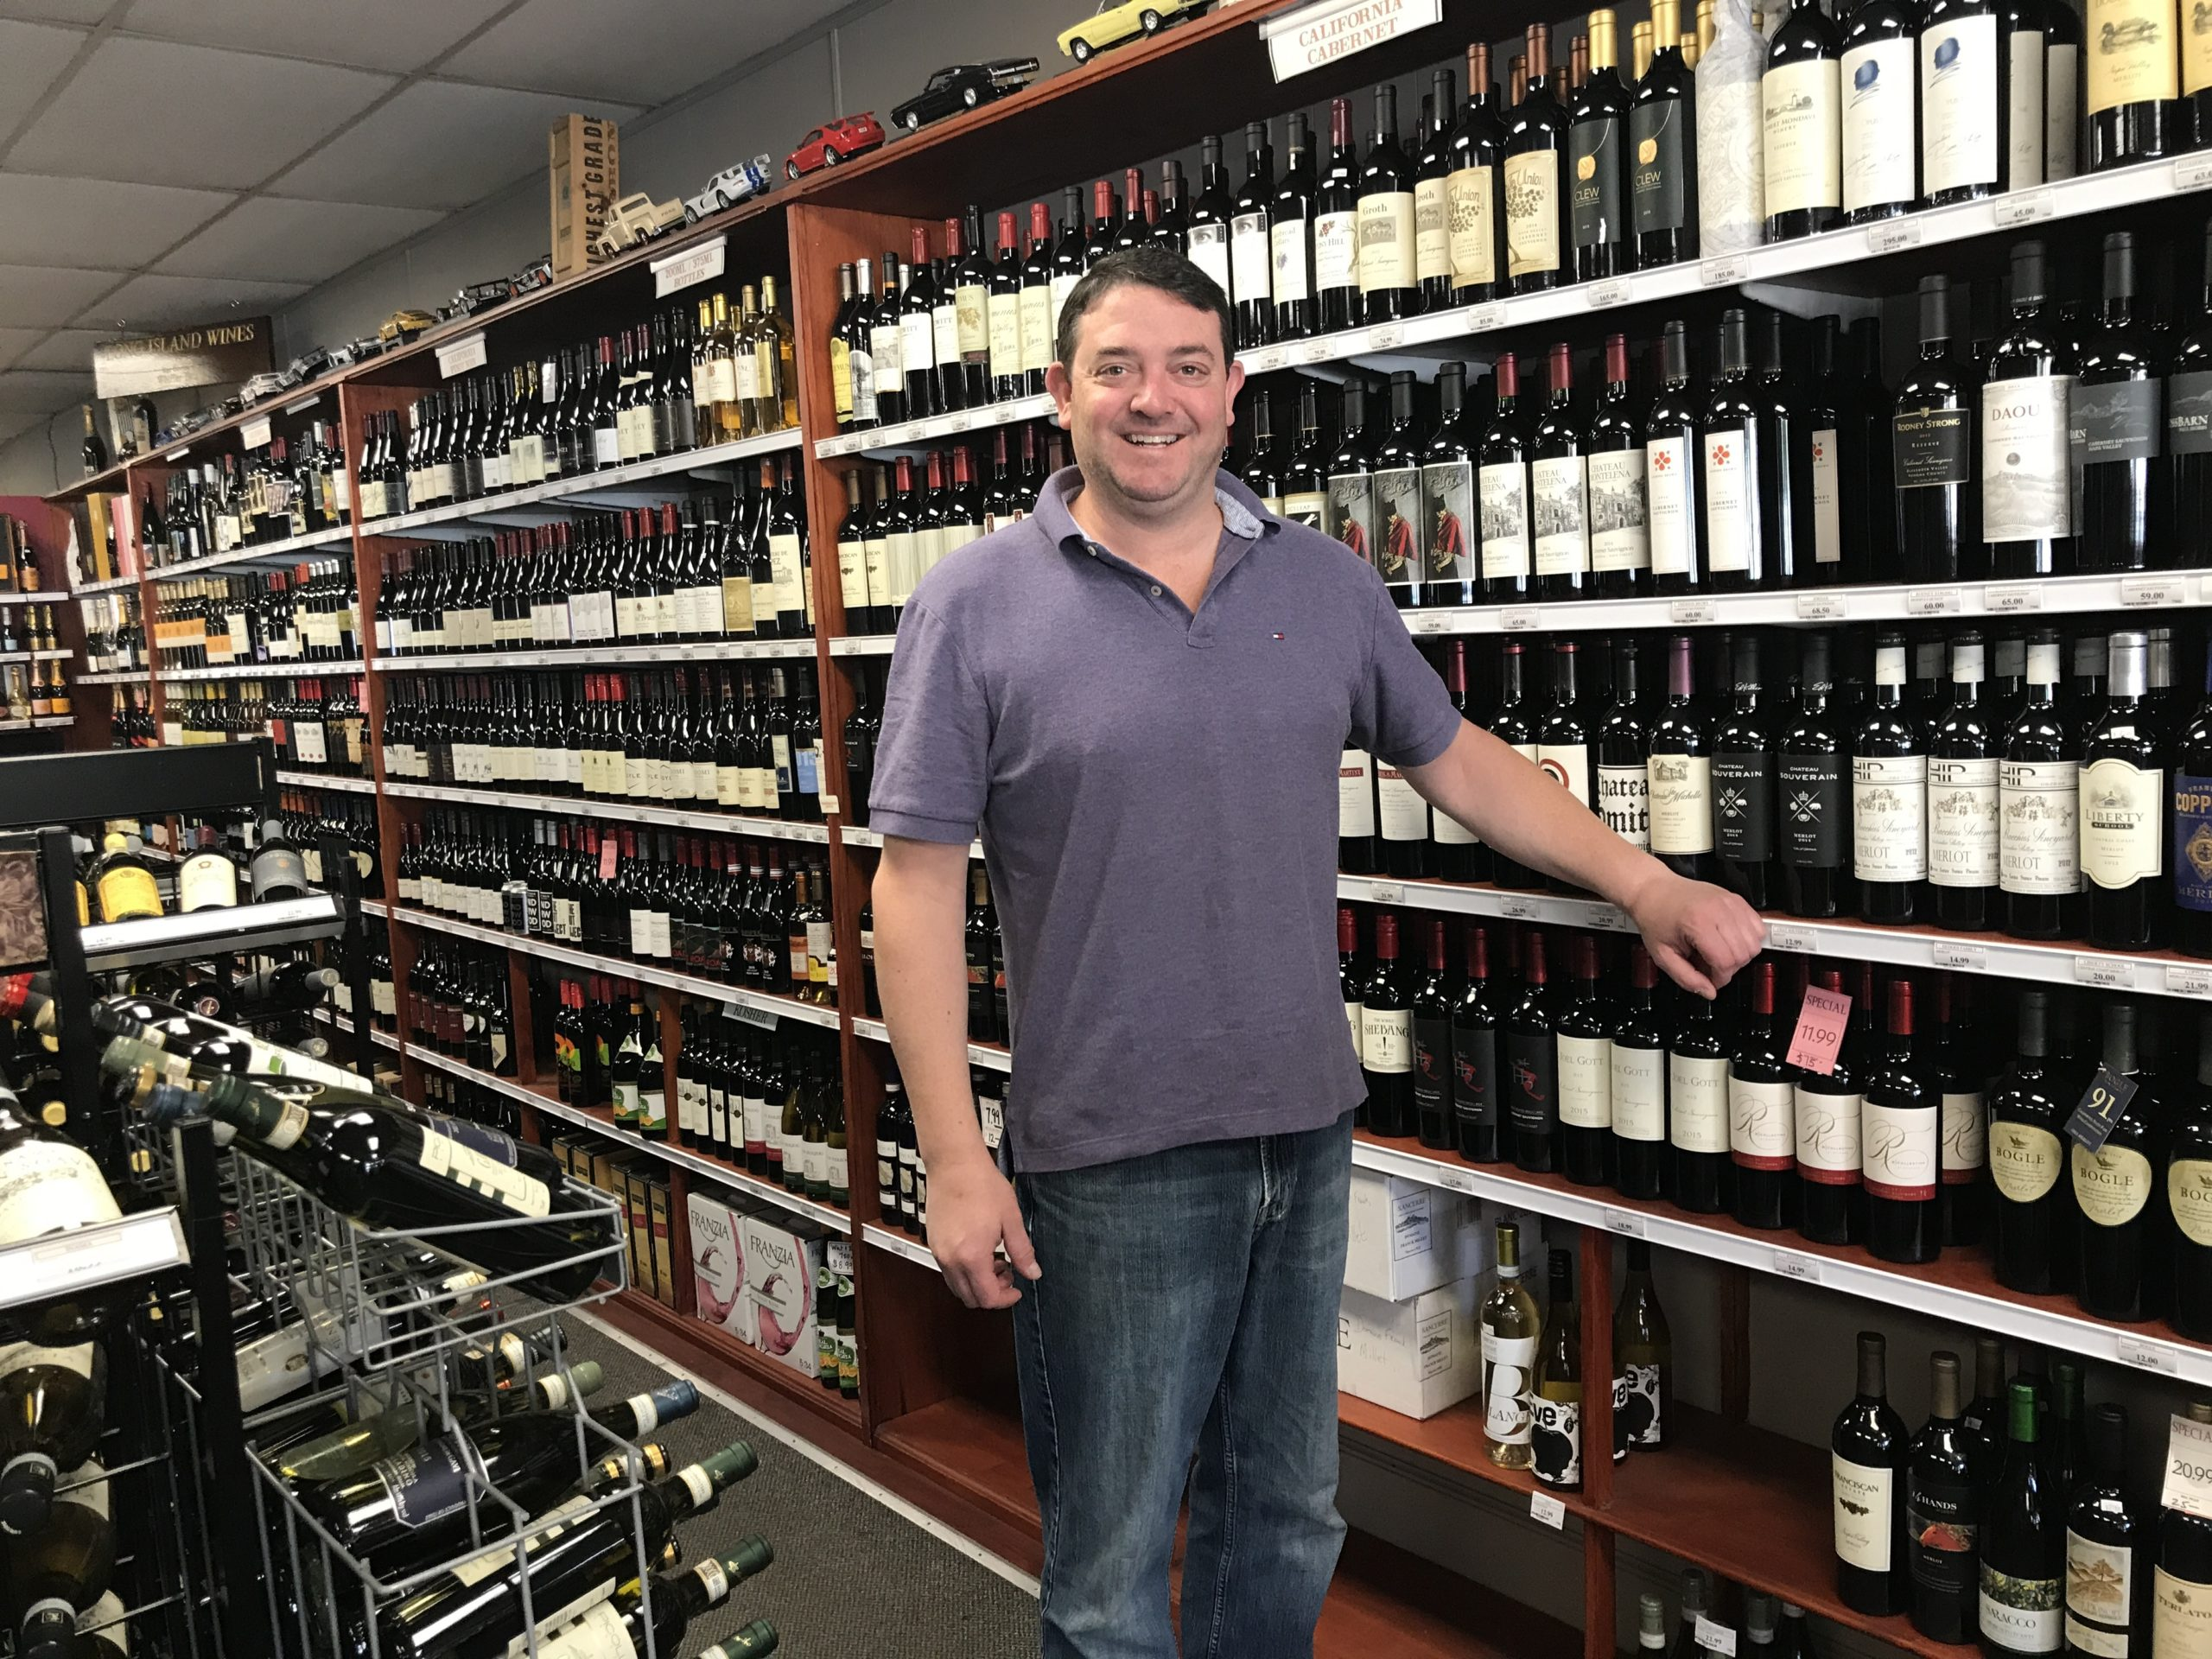 David Churchill, owner of Churchill Wines & Spirits in Bridgehampton, in 2017.